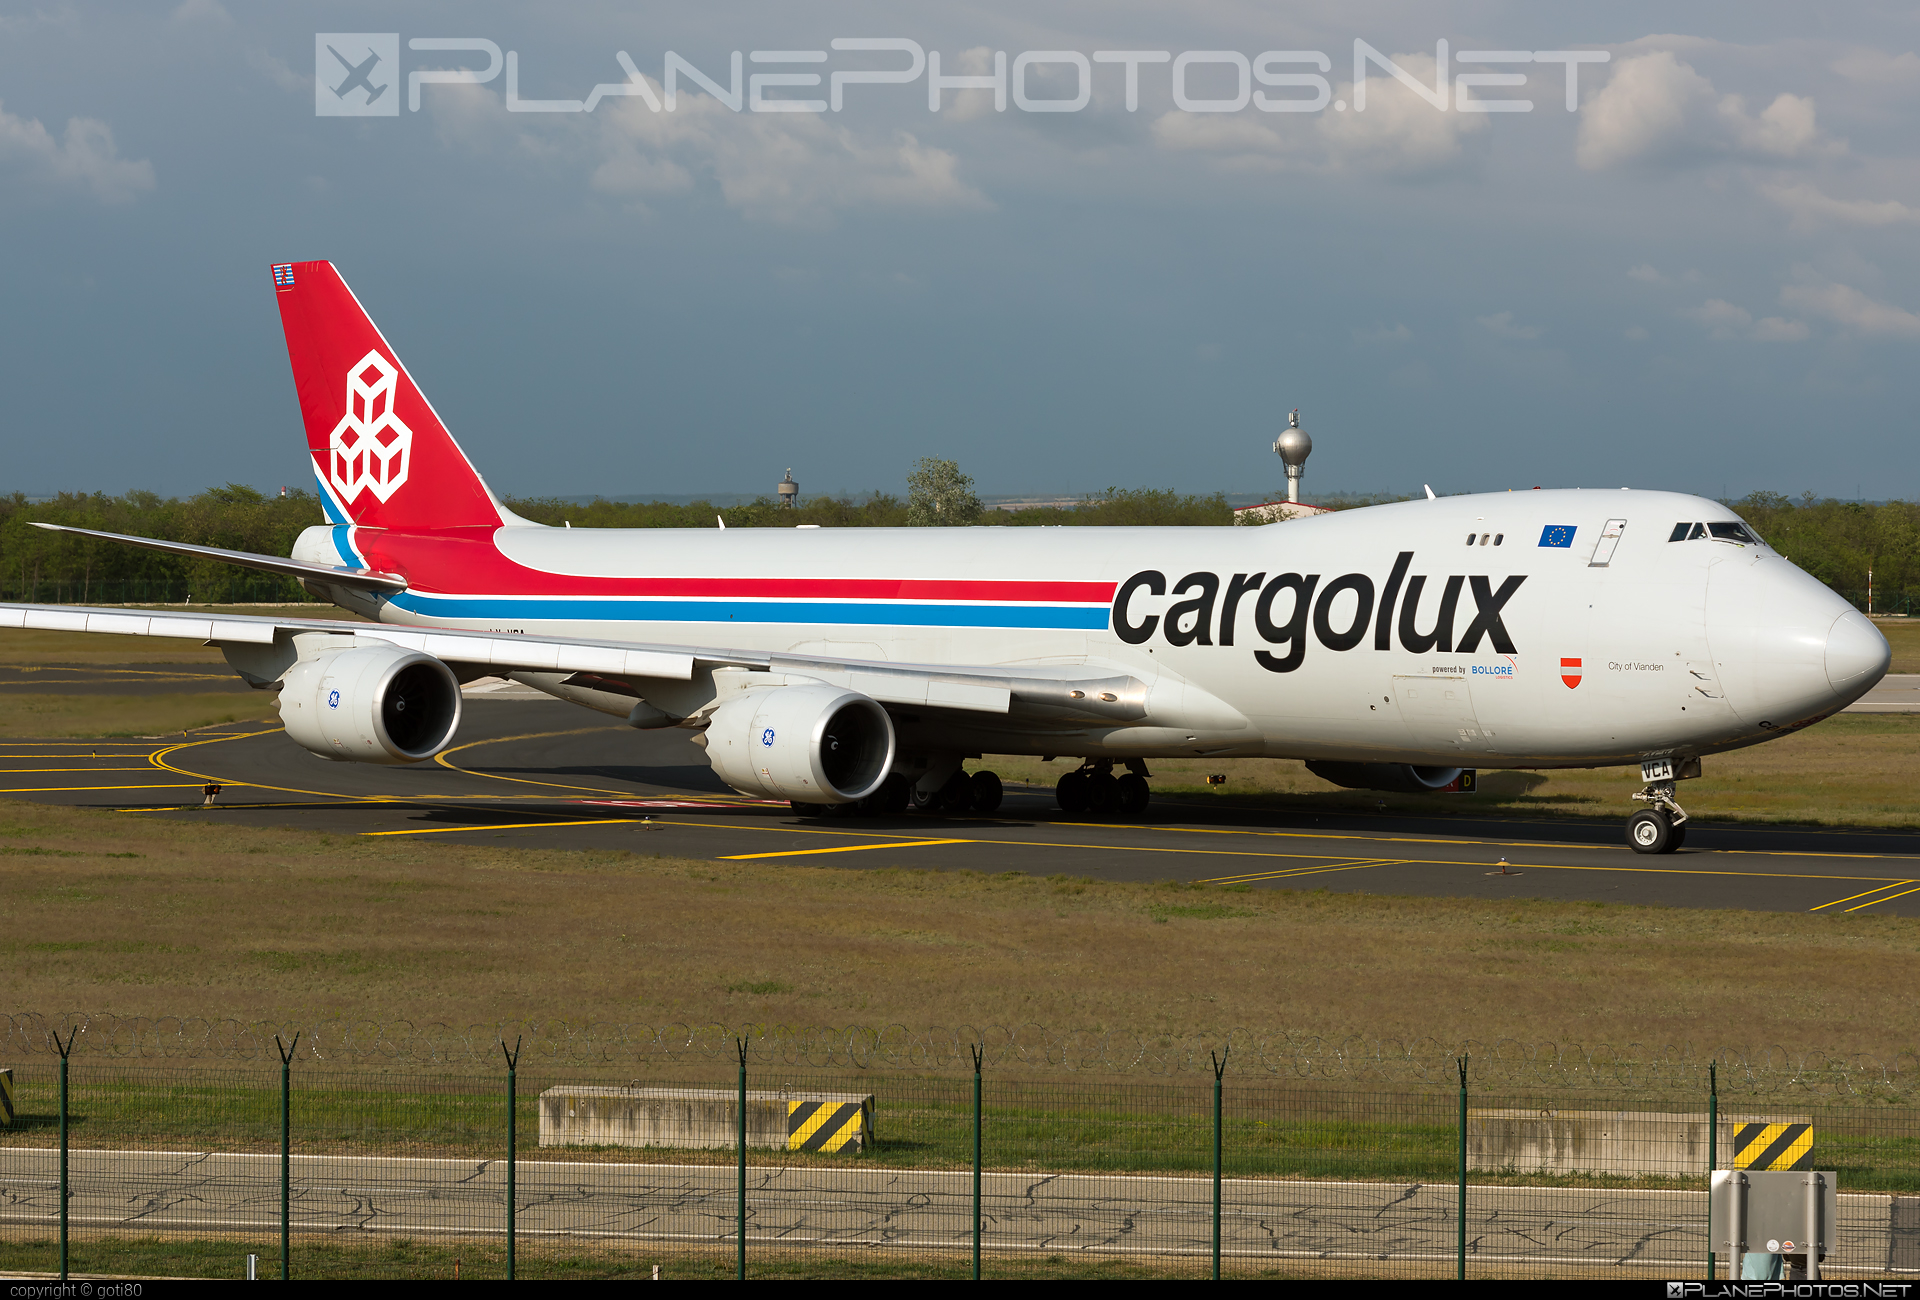 Boeing 747-8F - LX-VCA operated by Cargolux Airlines International #b747 #b747f #b747freighter #boeing #boeing747 #cargolux #jumbo